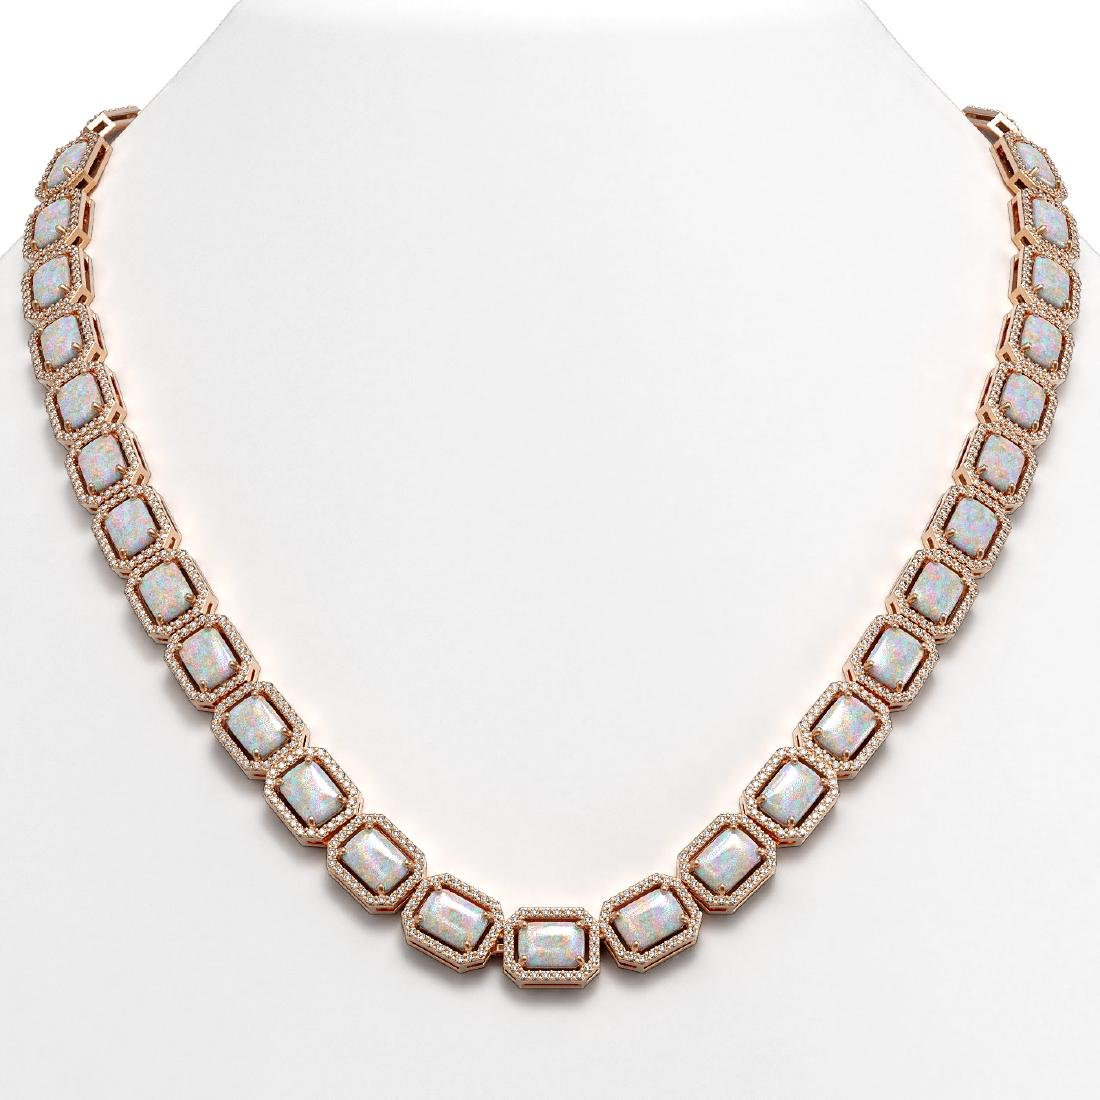 37.69 CTW Opal & Diamond Halo Necklace 10K Rose Gold